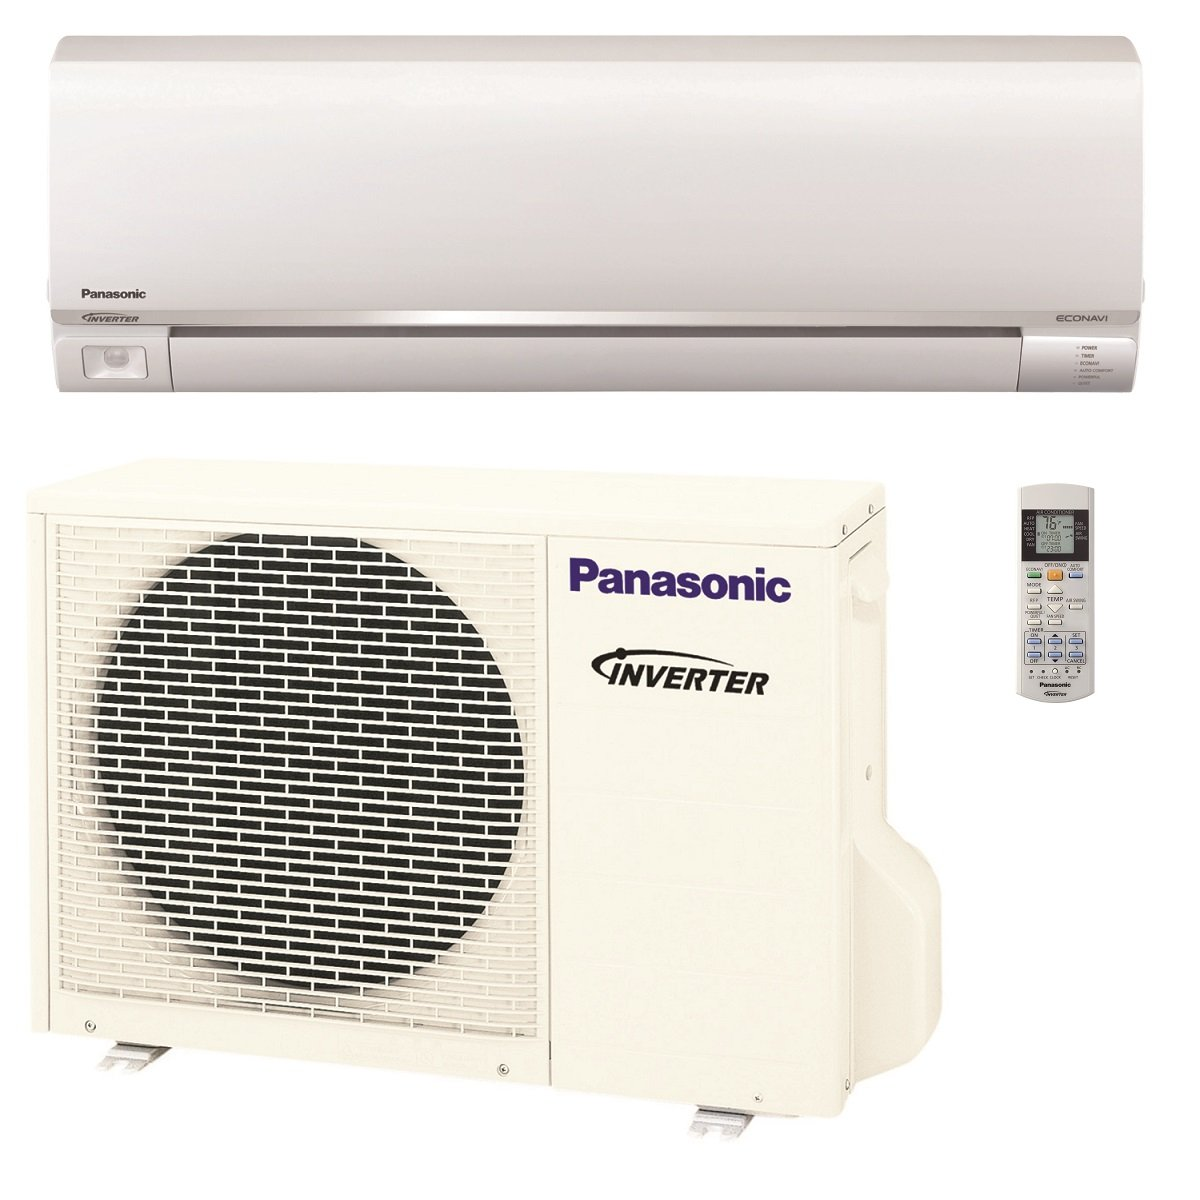 Panasonic Exterios E 12,000 BTU Ductless Mini Split Air Conditioning and Heating System, Indoor and Outdoor Set with Wireless Remote(208/230V)